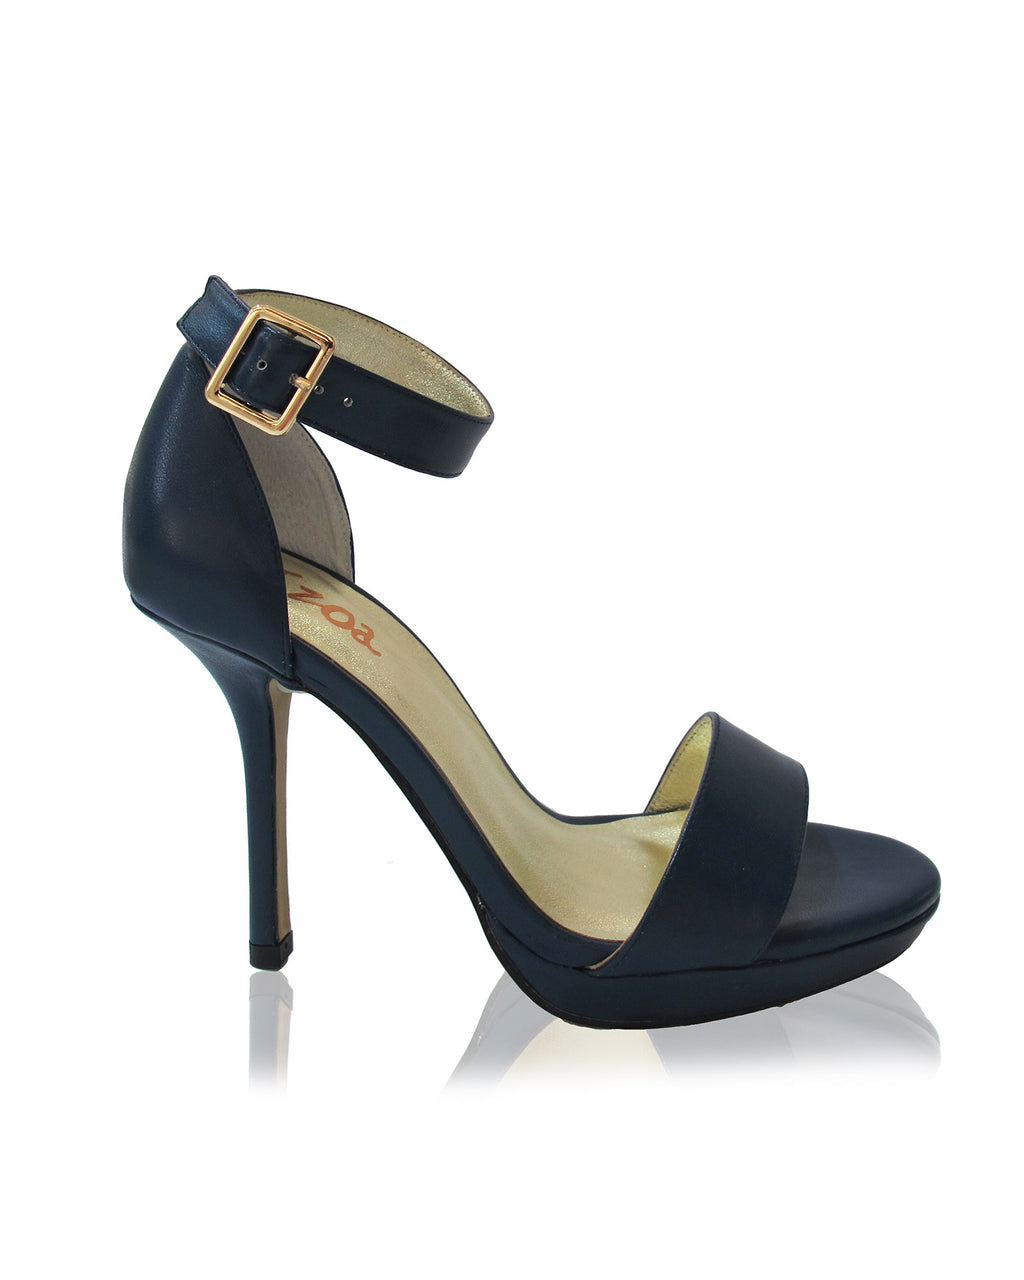 Izoa Lucille Heels Navy (SIZES 40 & 41 ONLY)